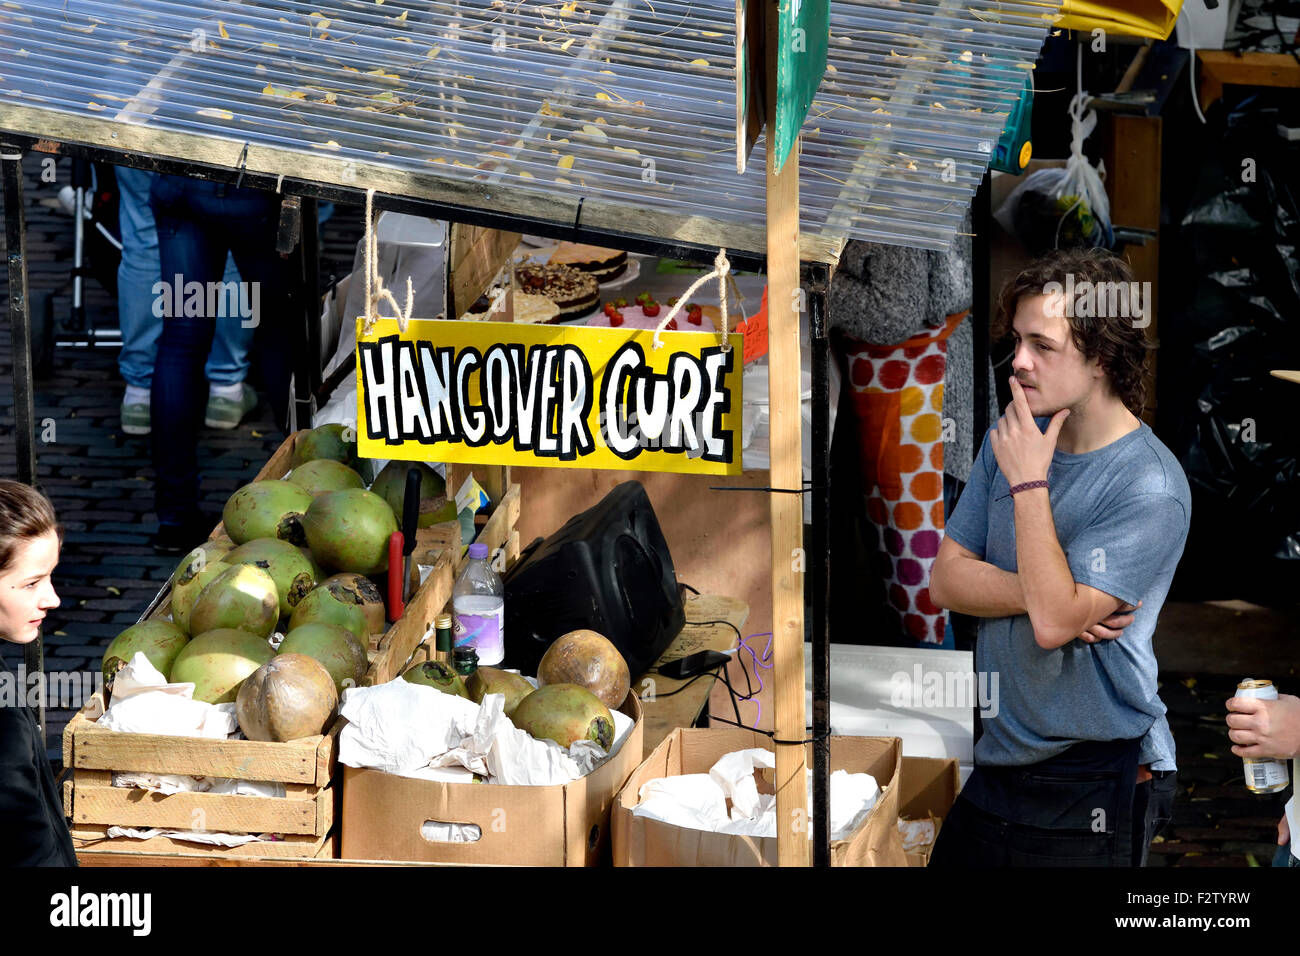 London, England, UK. Camden Market - stall selling a 'Hangover Cure' - Stock Image